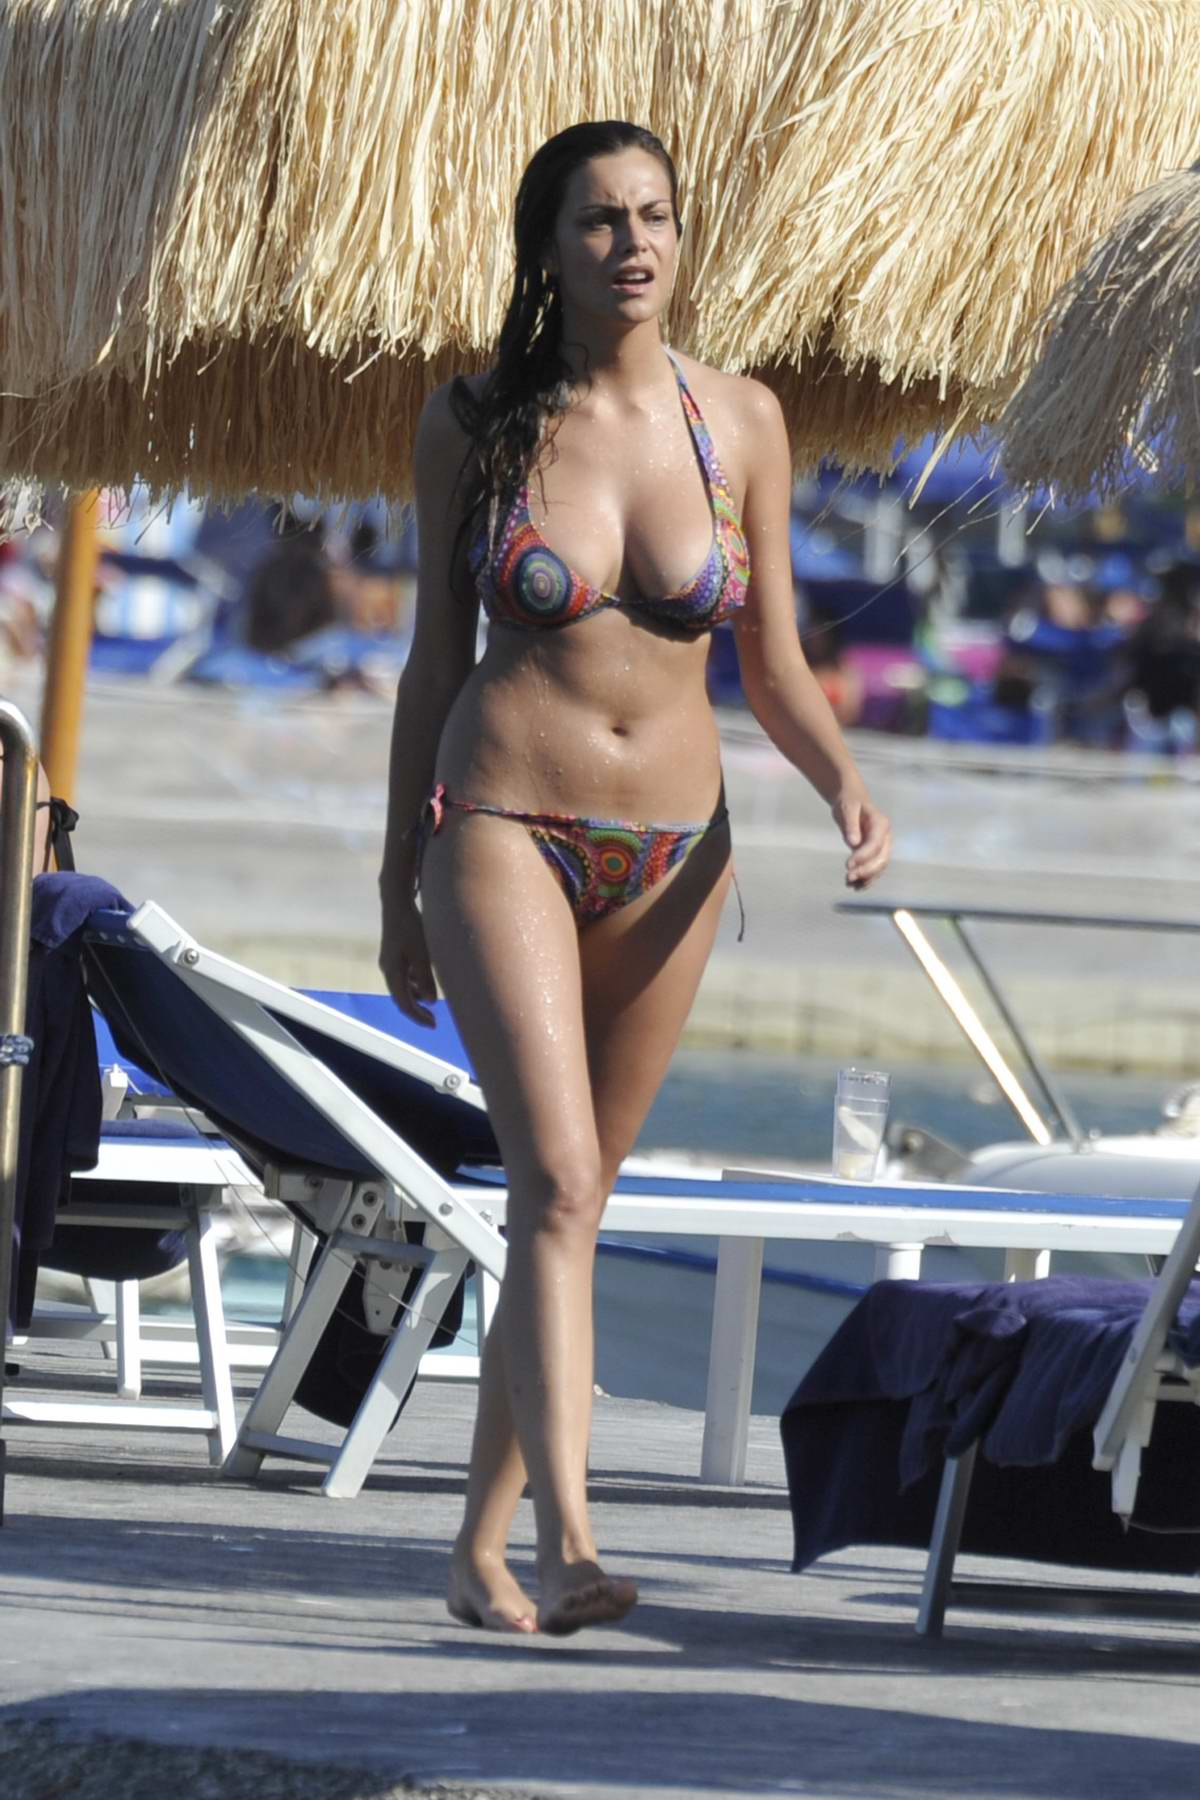 Valentina Maria Reggio in Bikini on the Beach in Ischia, Italy